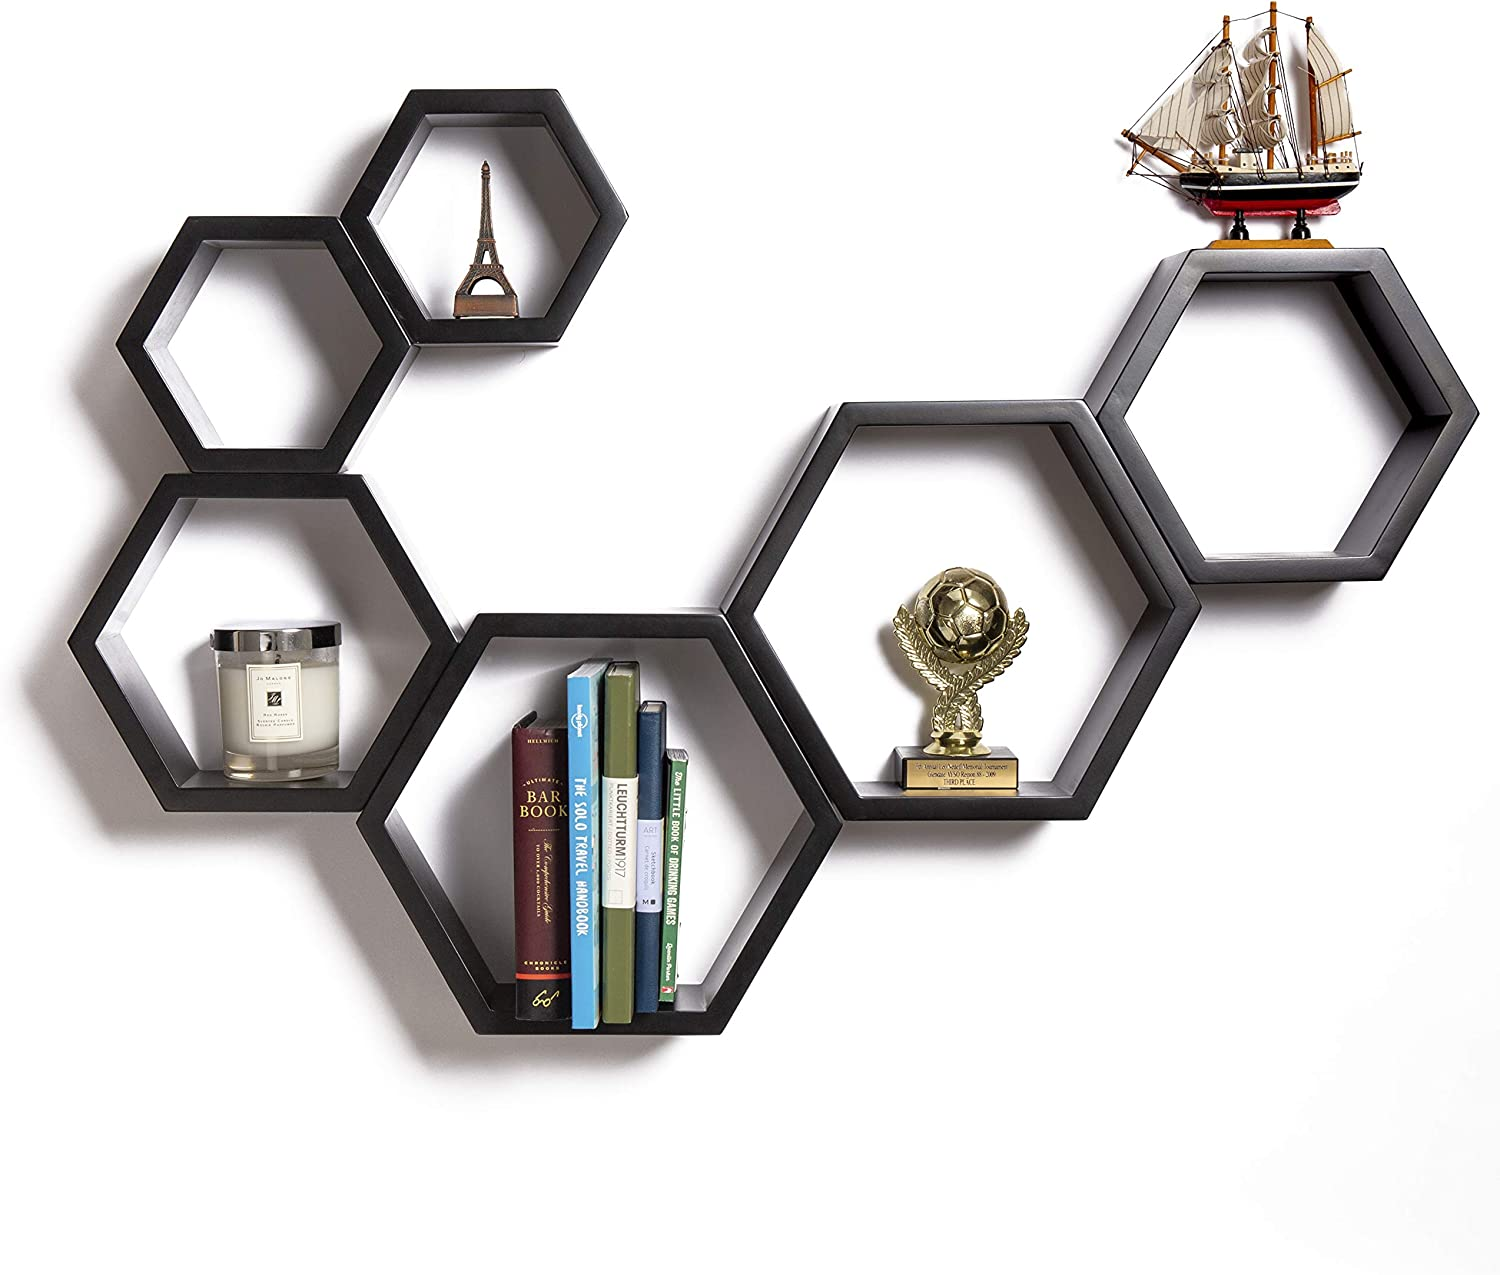 Hexagon Floating Shelves – Modern Honeycomb Shelves – Wall Mounted Geometric Wood Decor for Living Room, Kitchen and Bedroom – Screws and Anchors Included (Black, Set of 6)